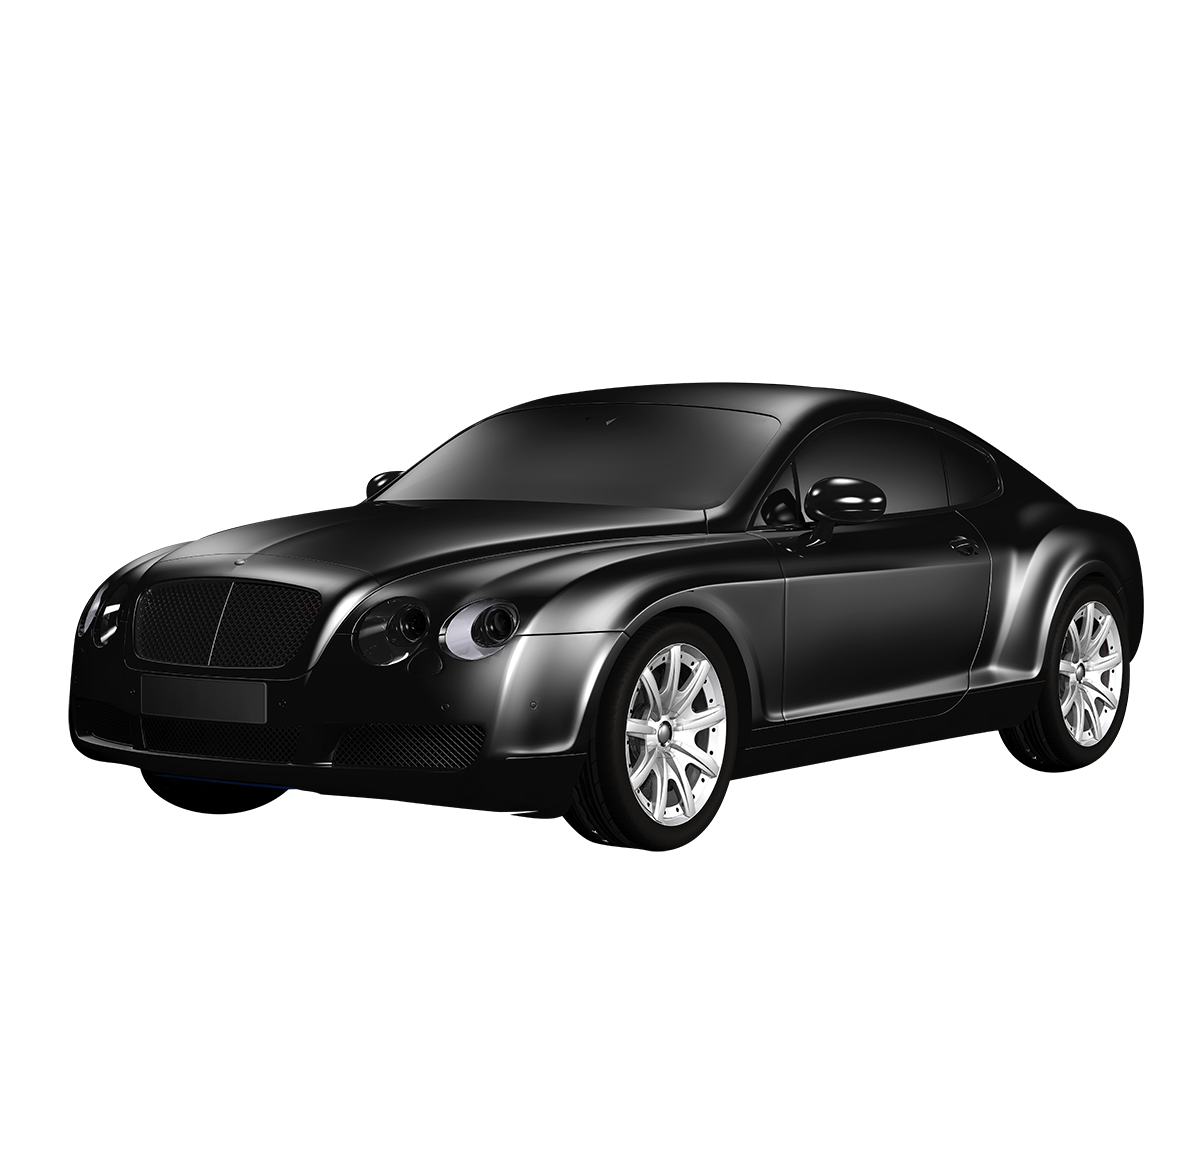 Free Download 3d Black Car Png Sillhouette Image Transparent Background It Is A Good Quality 3d Black Car Png Car It Can Be Used In Making White Board Animatio